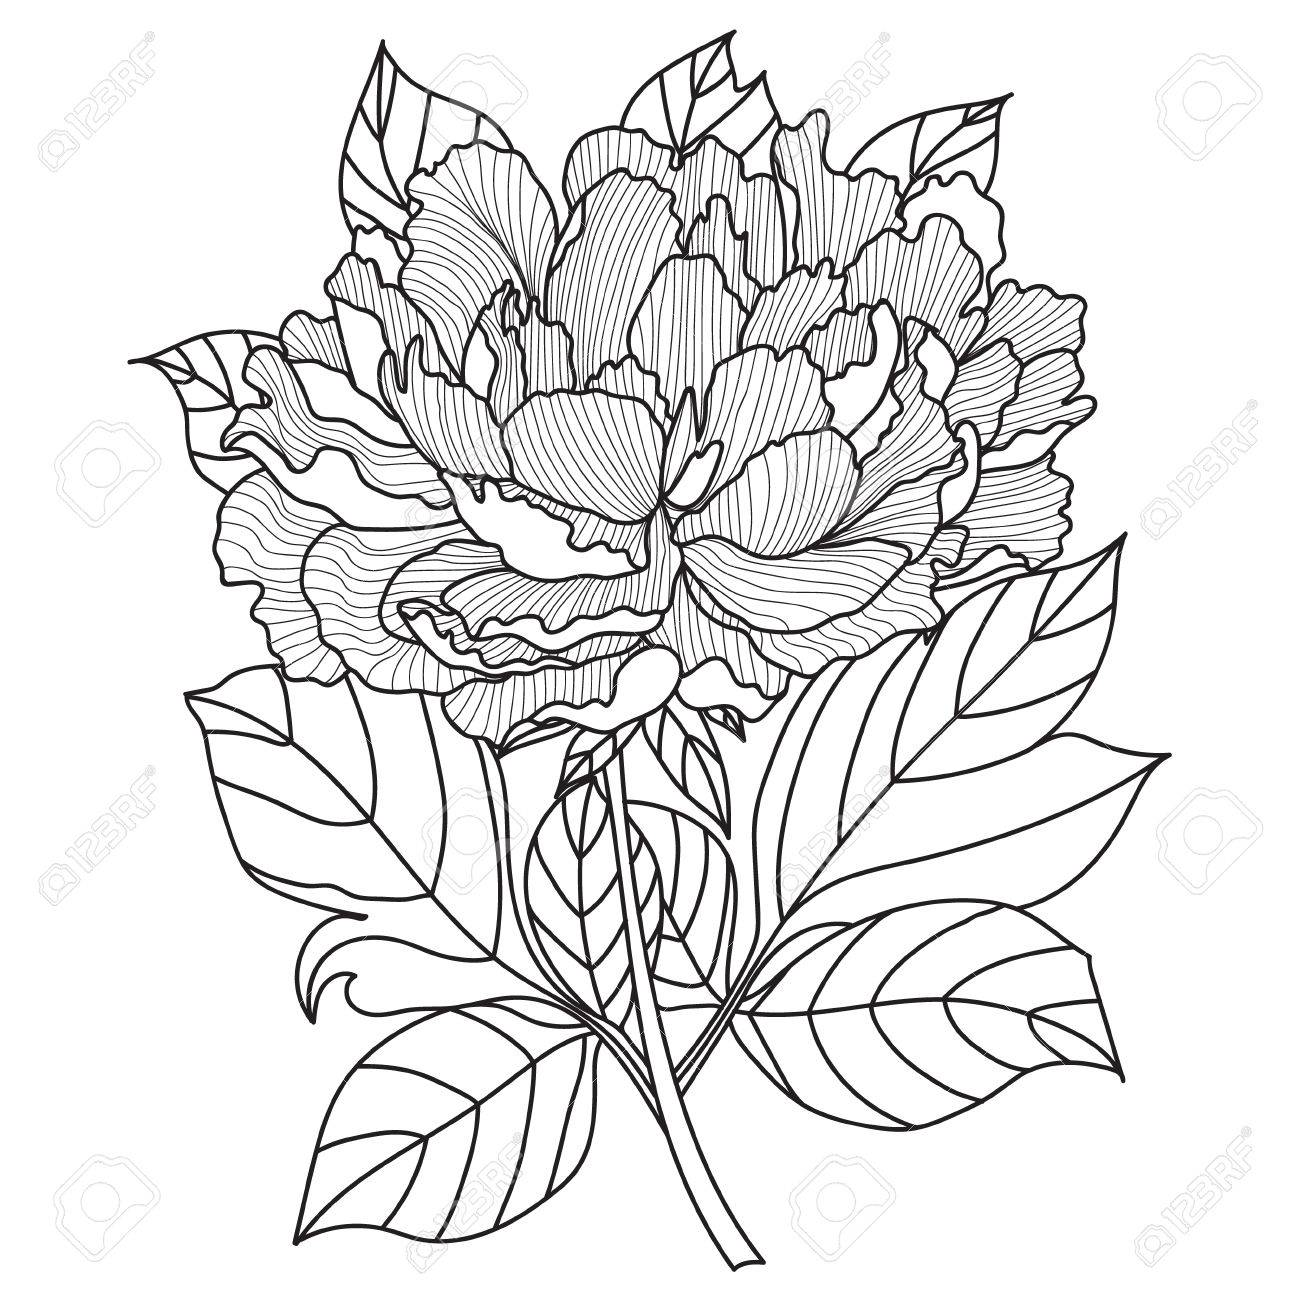 vector peony coloring book page for adults hand drawn artwork